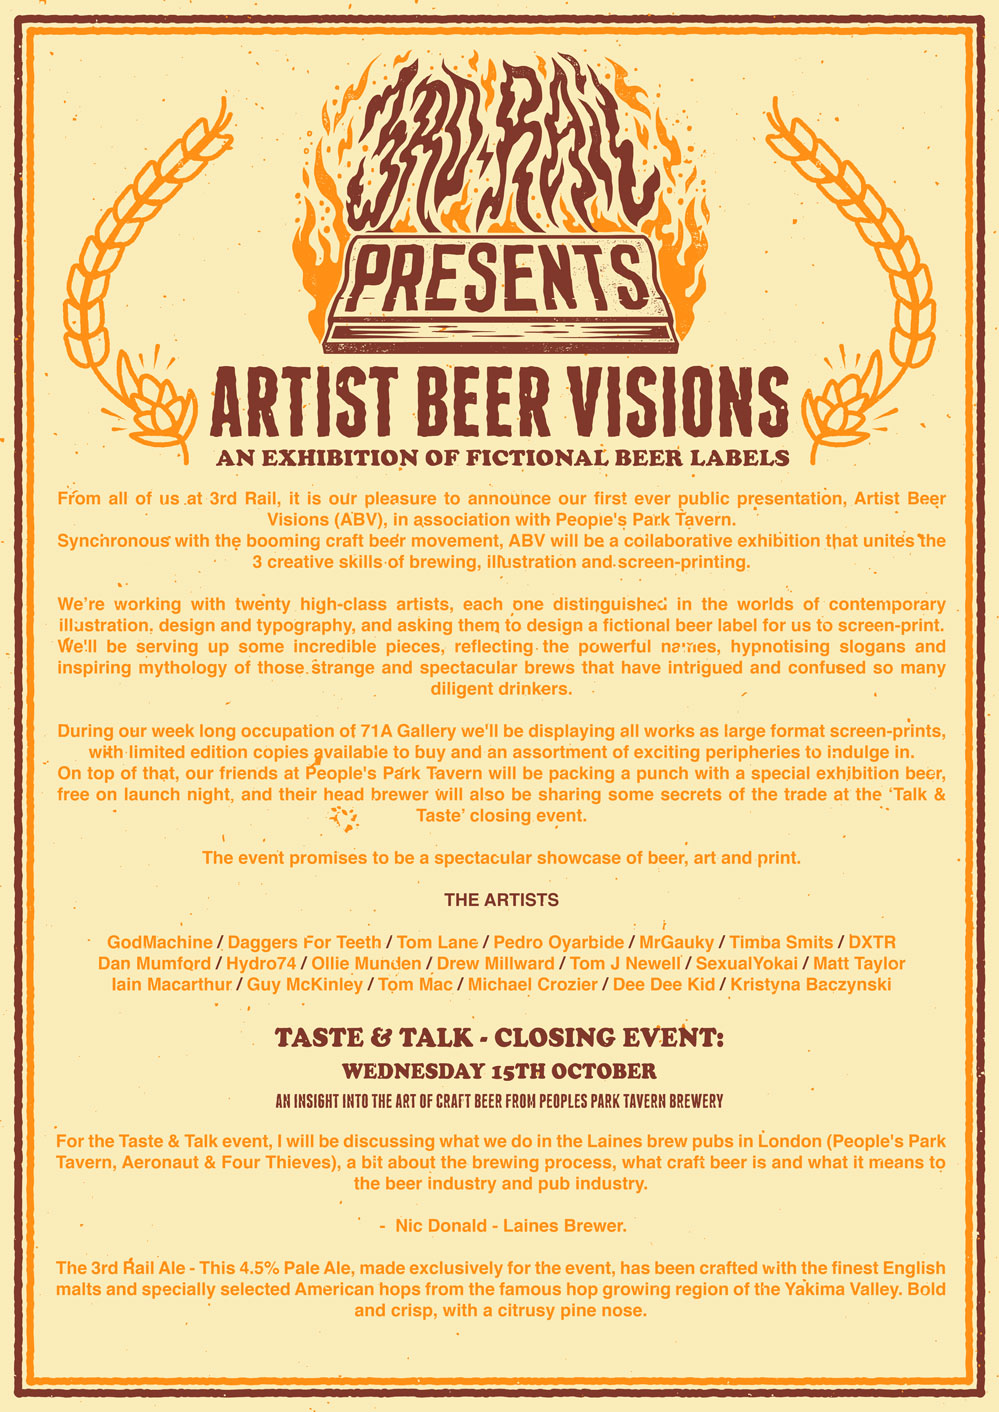 Artist Beer Visions - ABV - An Exhibition Of Fictional Beer